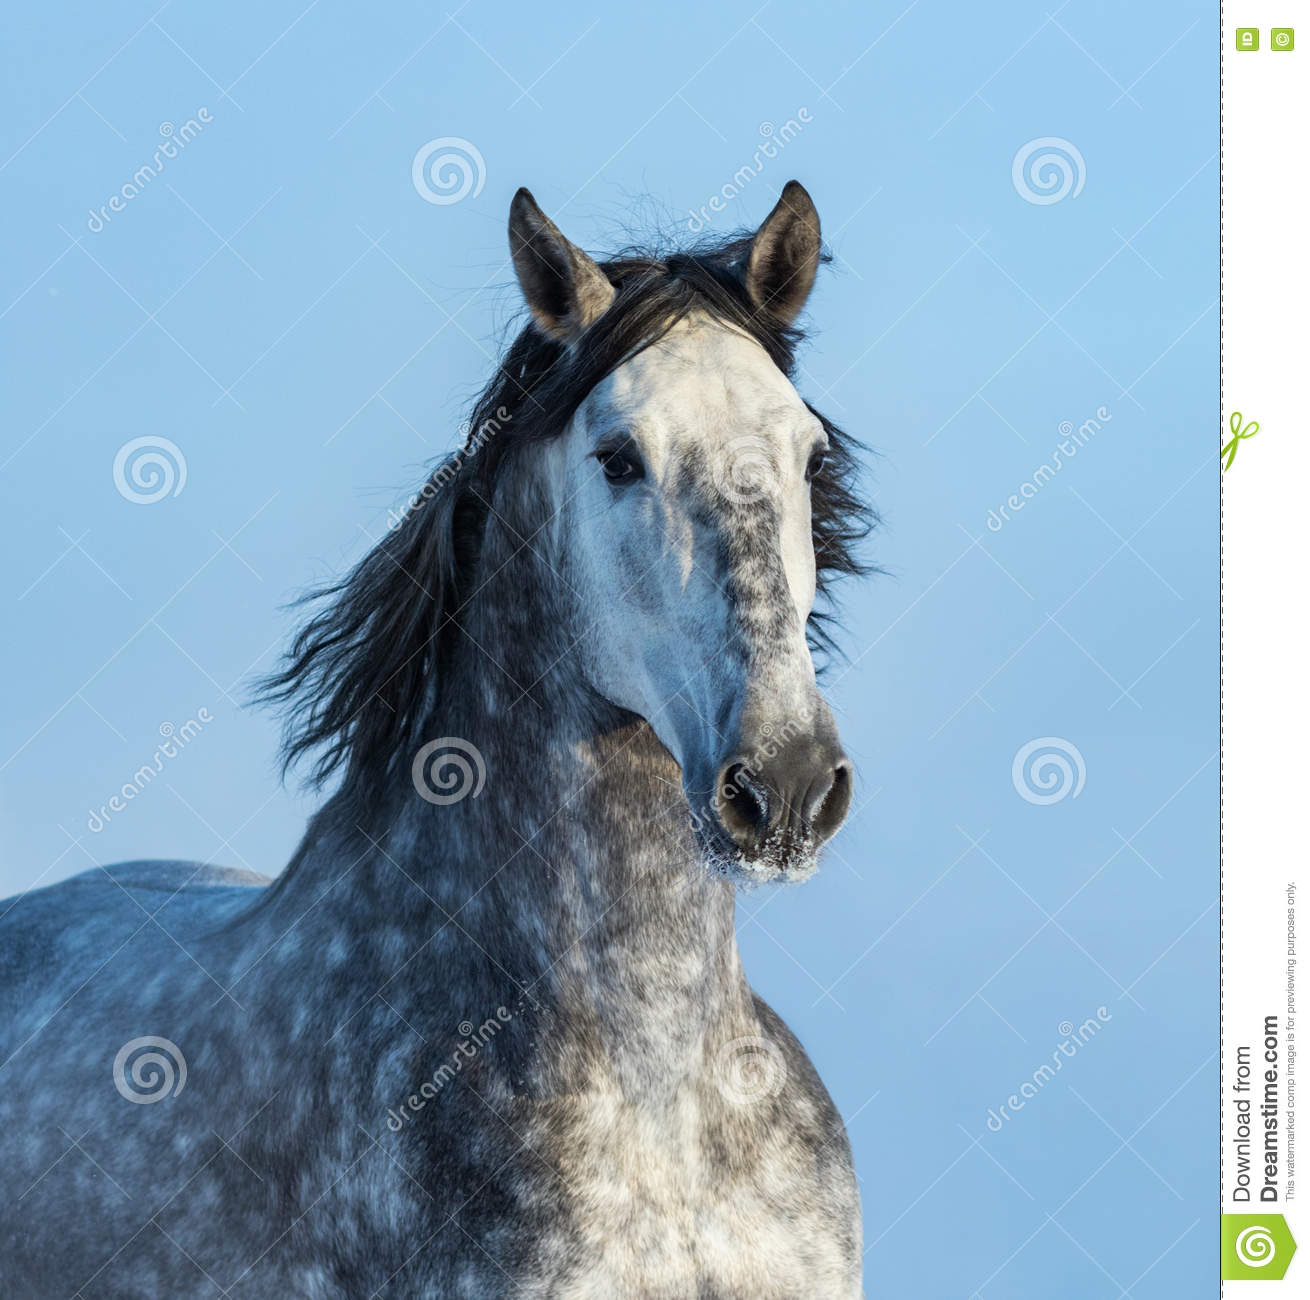 Gray Andalusian Horse Portret van Spaans paard